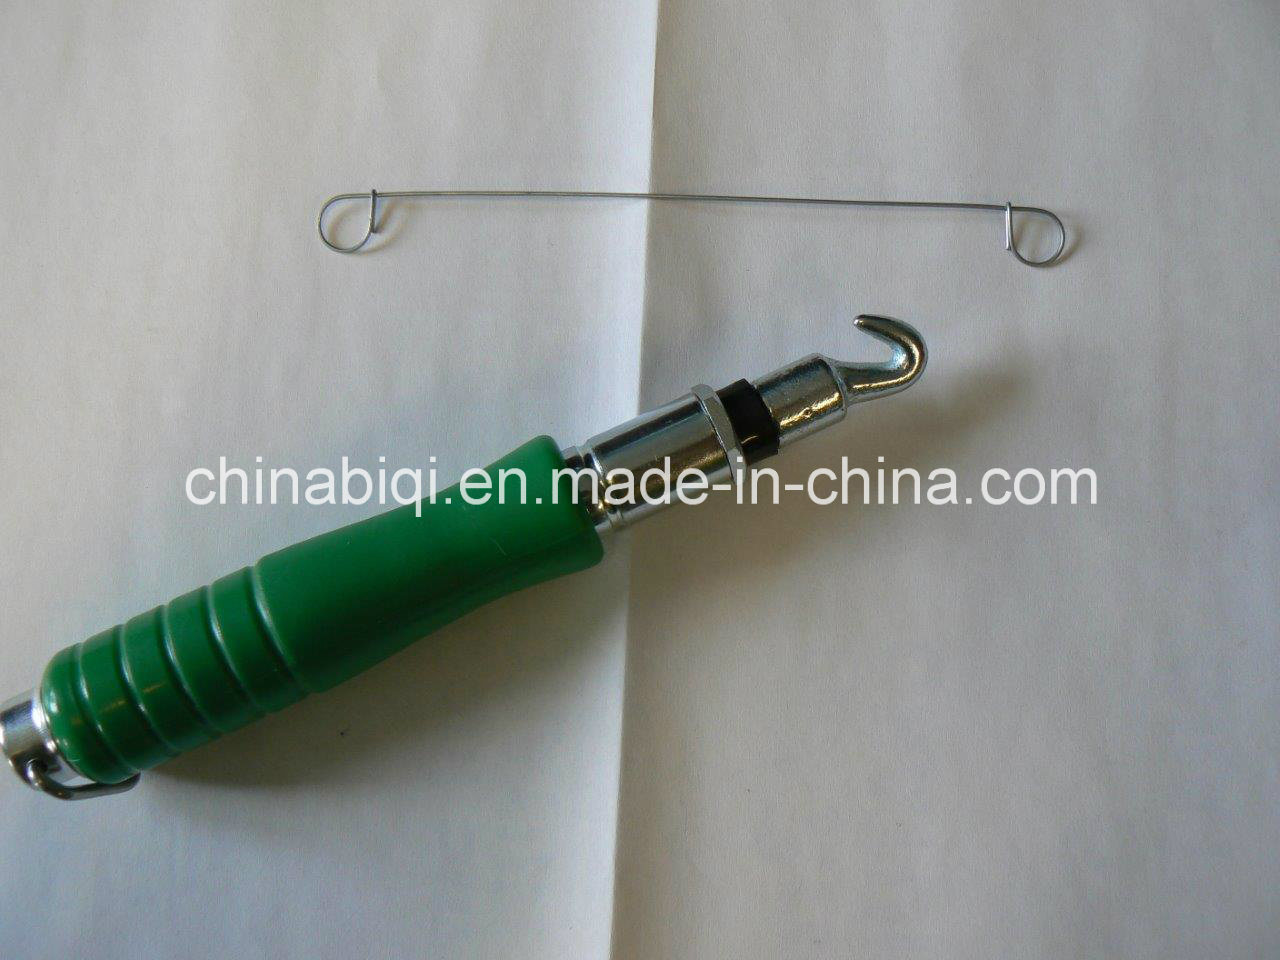 China Tw1525 PC Coated Rebar Tie Wire Tool Tw1525 PC Coated Rebar ...